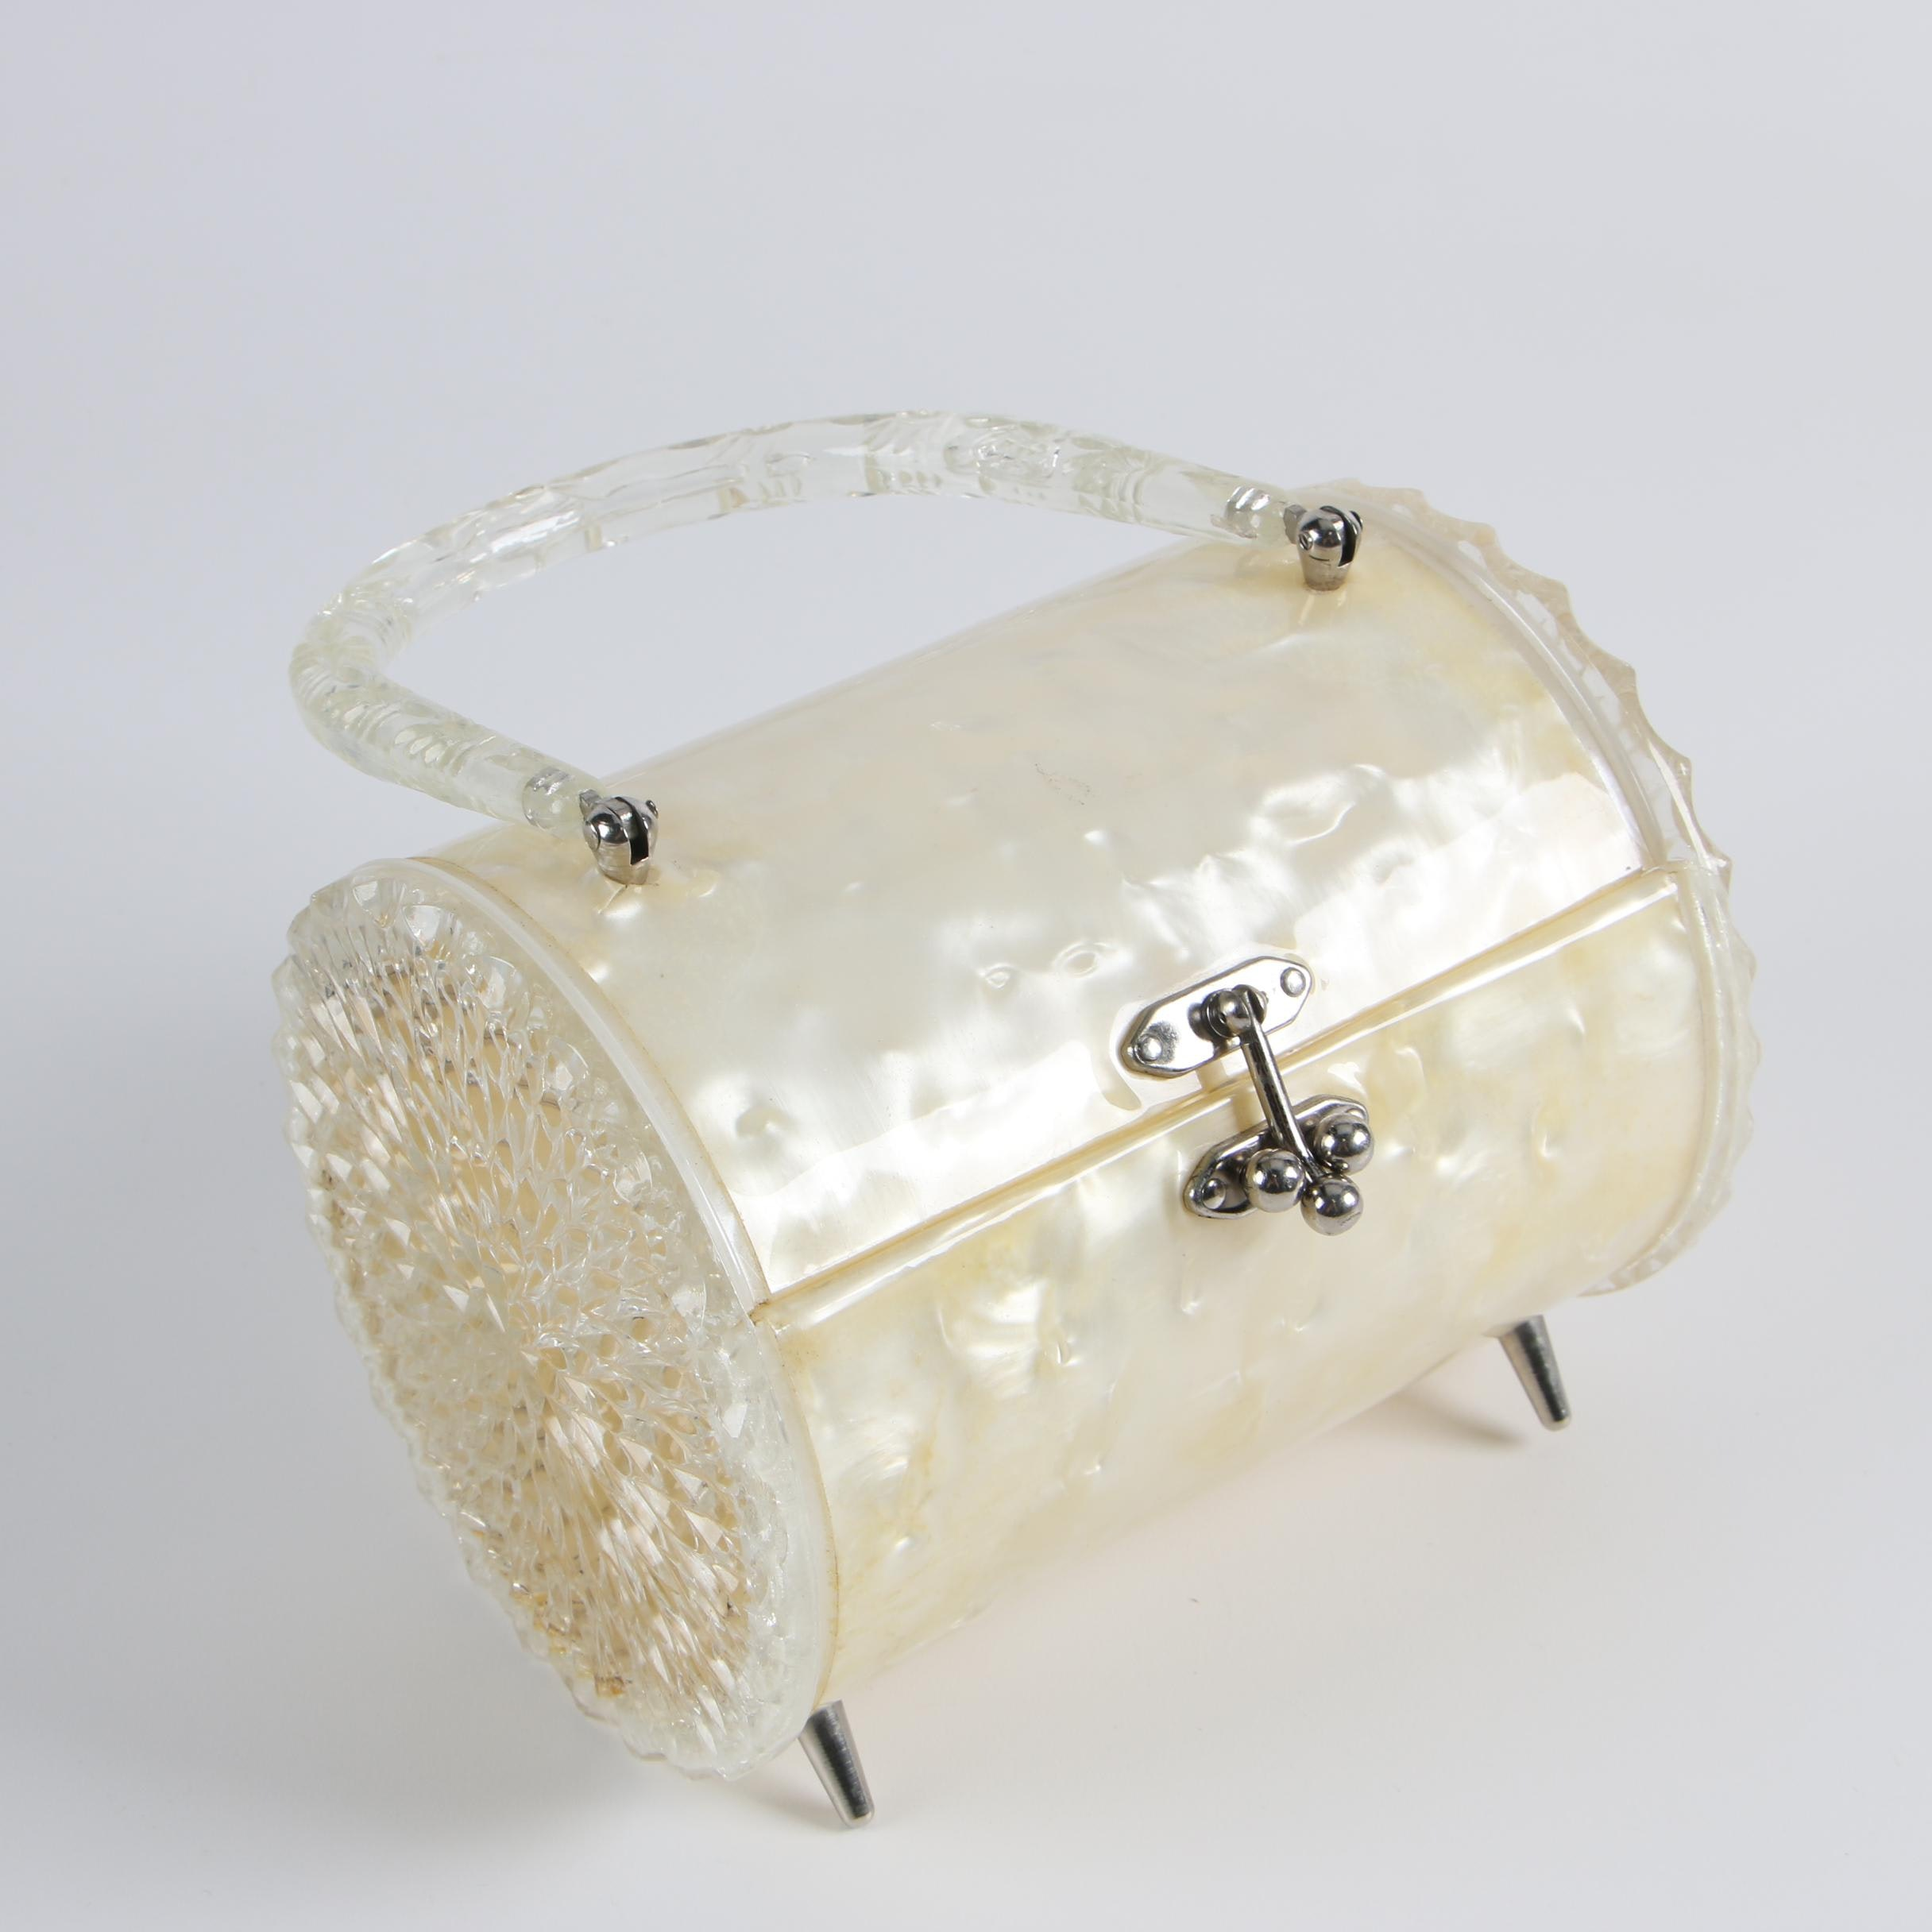 1950s Lucite Footed Box Purse